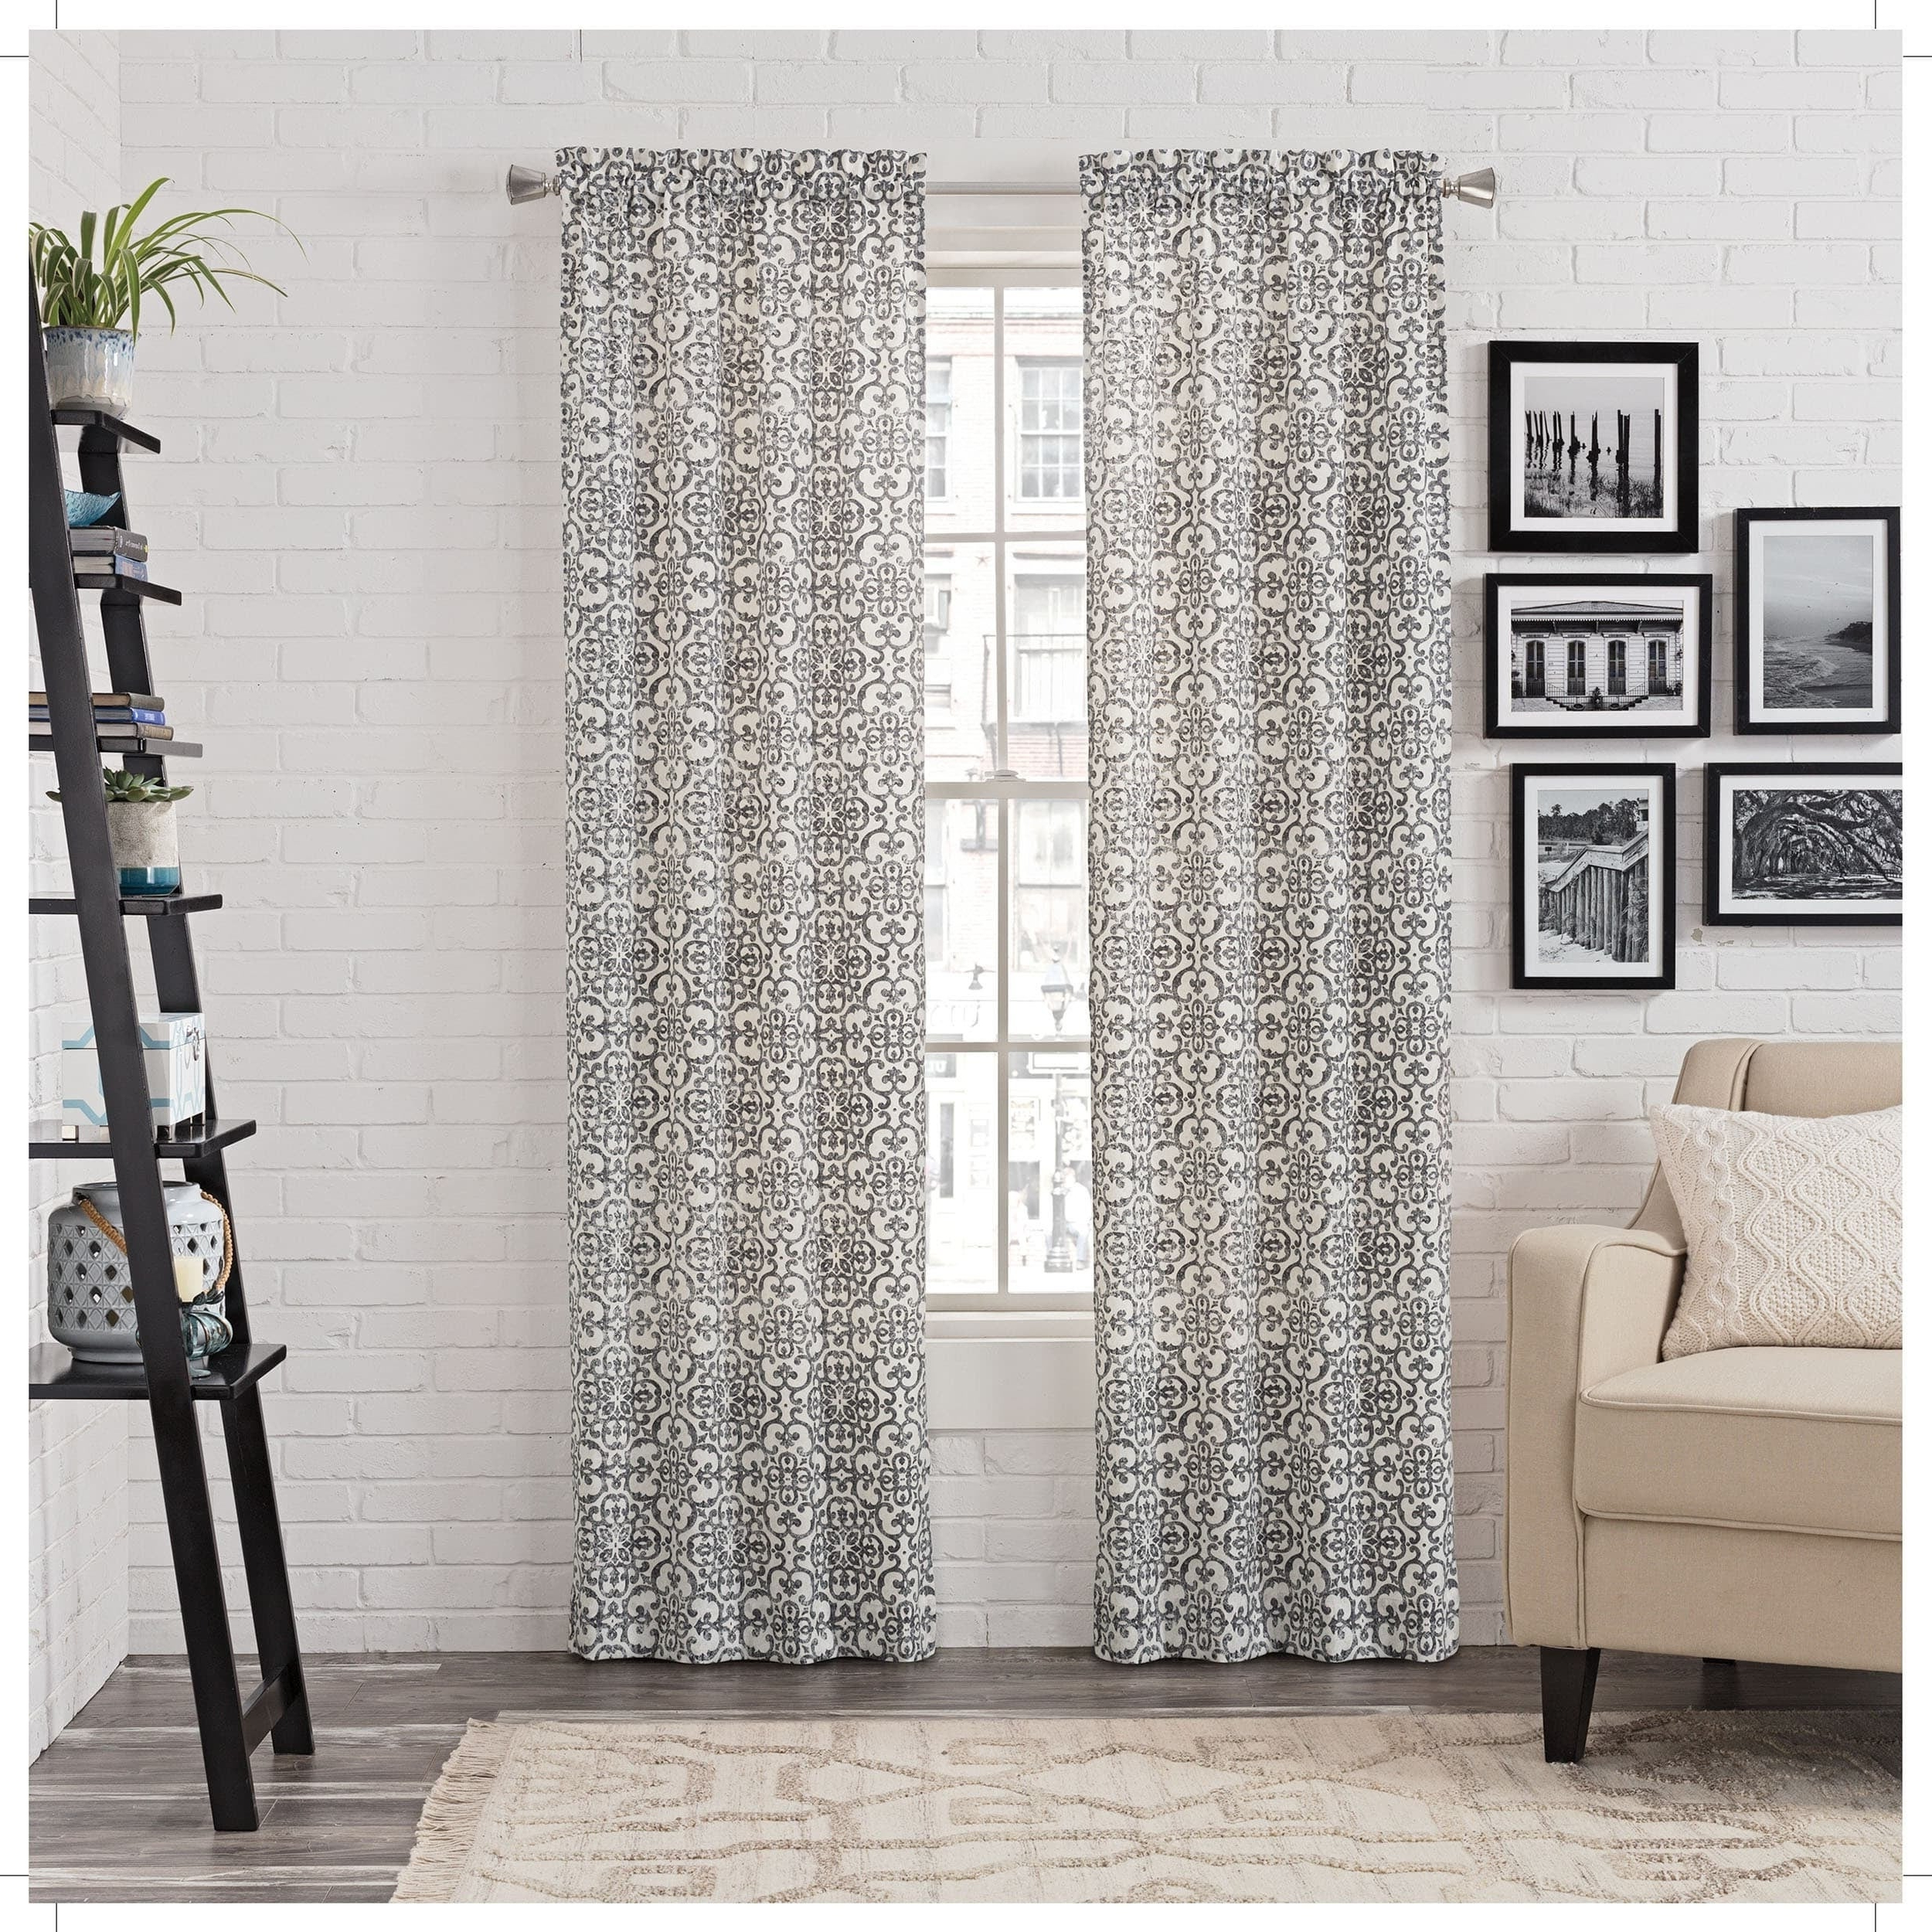 Buy Gracewood Hollow Curtains & Drapes Online At Overstock In Well Known Gracewood Hollow Tucakovic Energy Efficient Fabric Blackout Curtains (View 10 of 20)